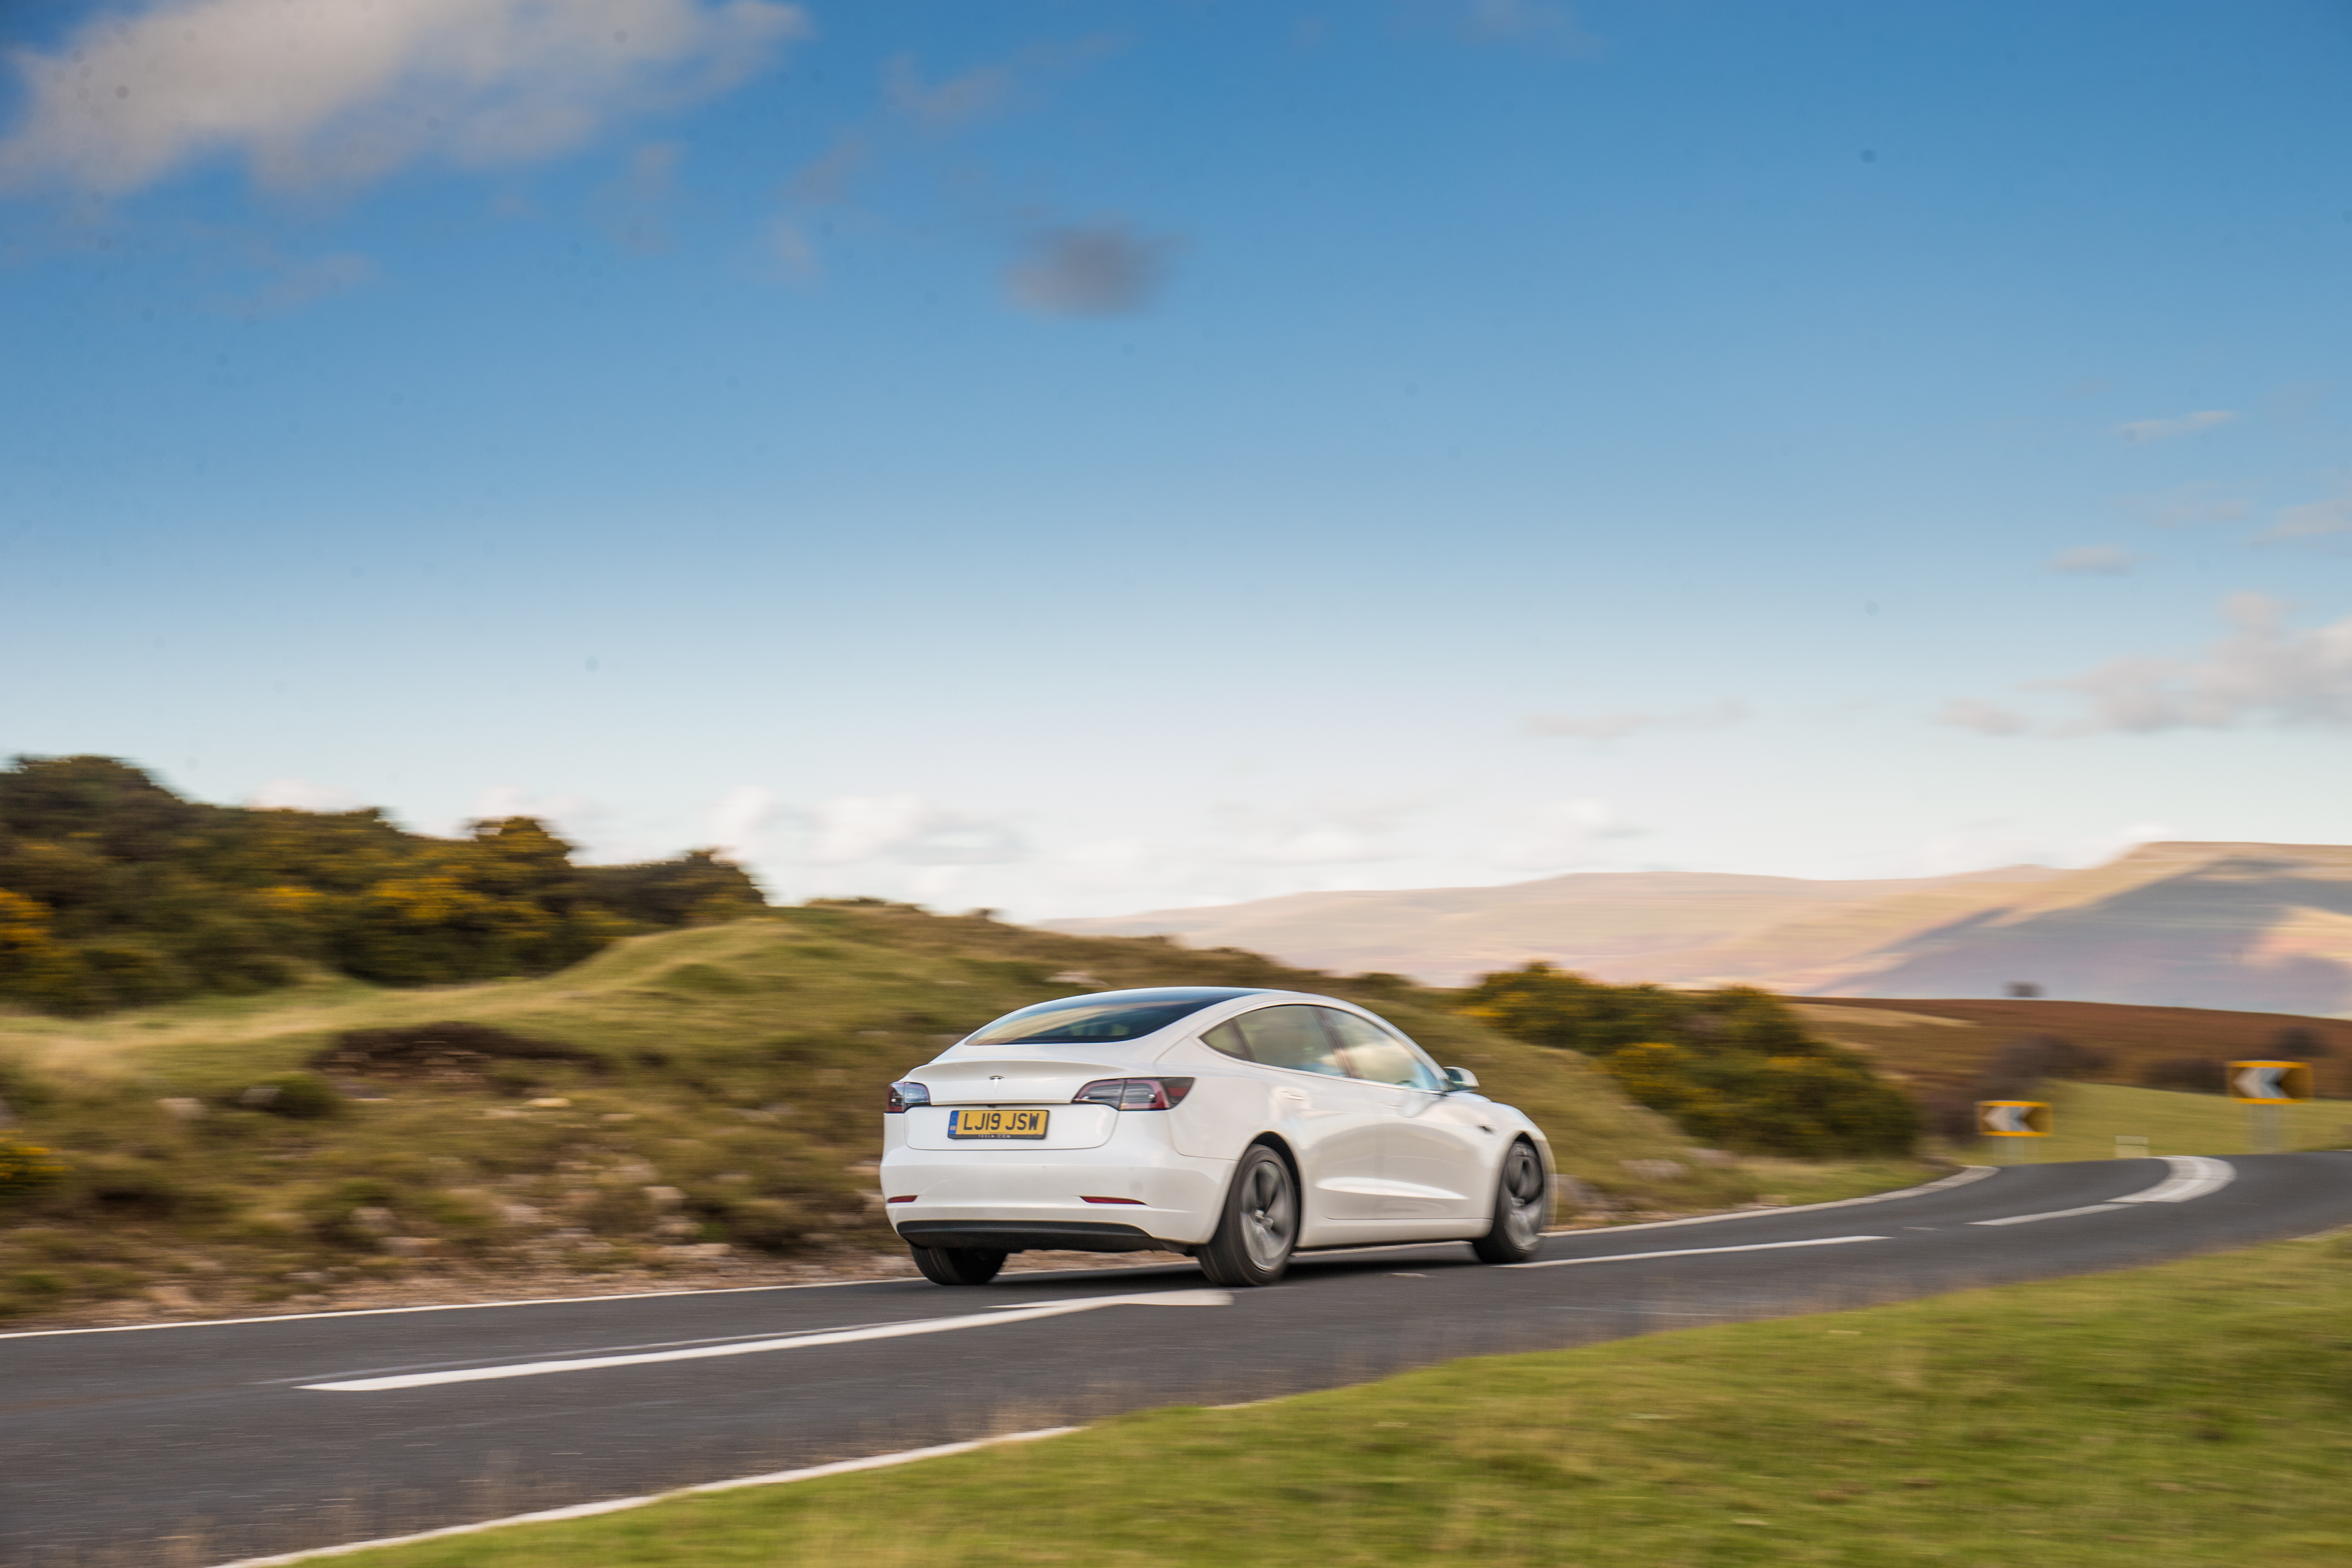 The Model 3 is proving popular in the UK